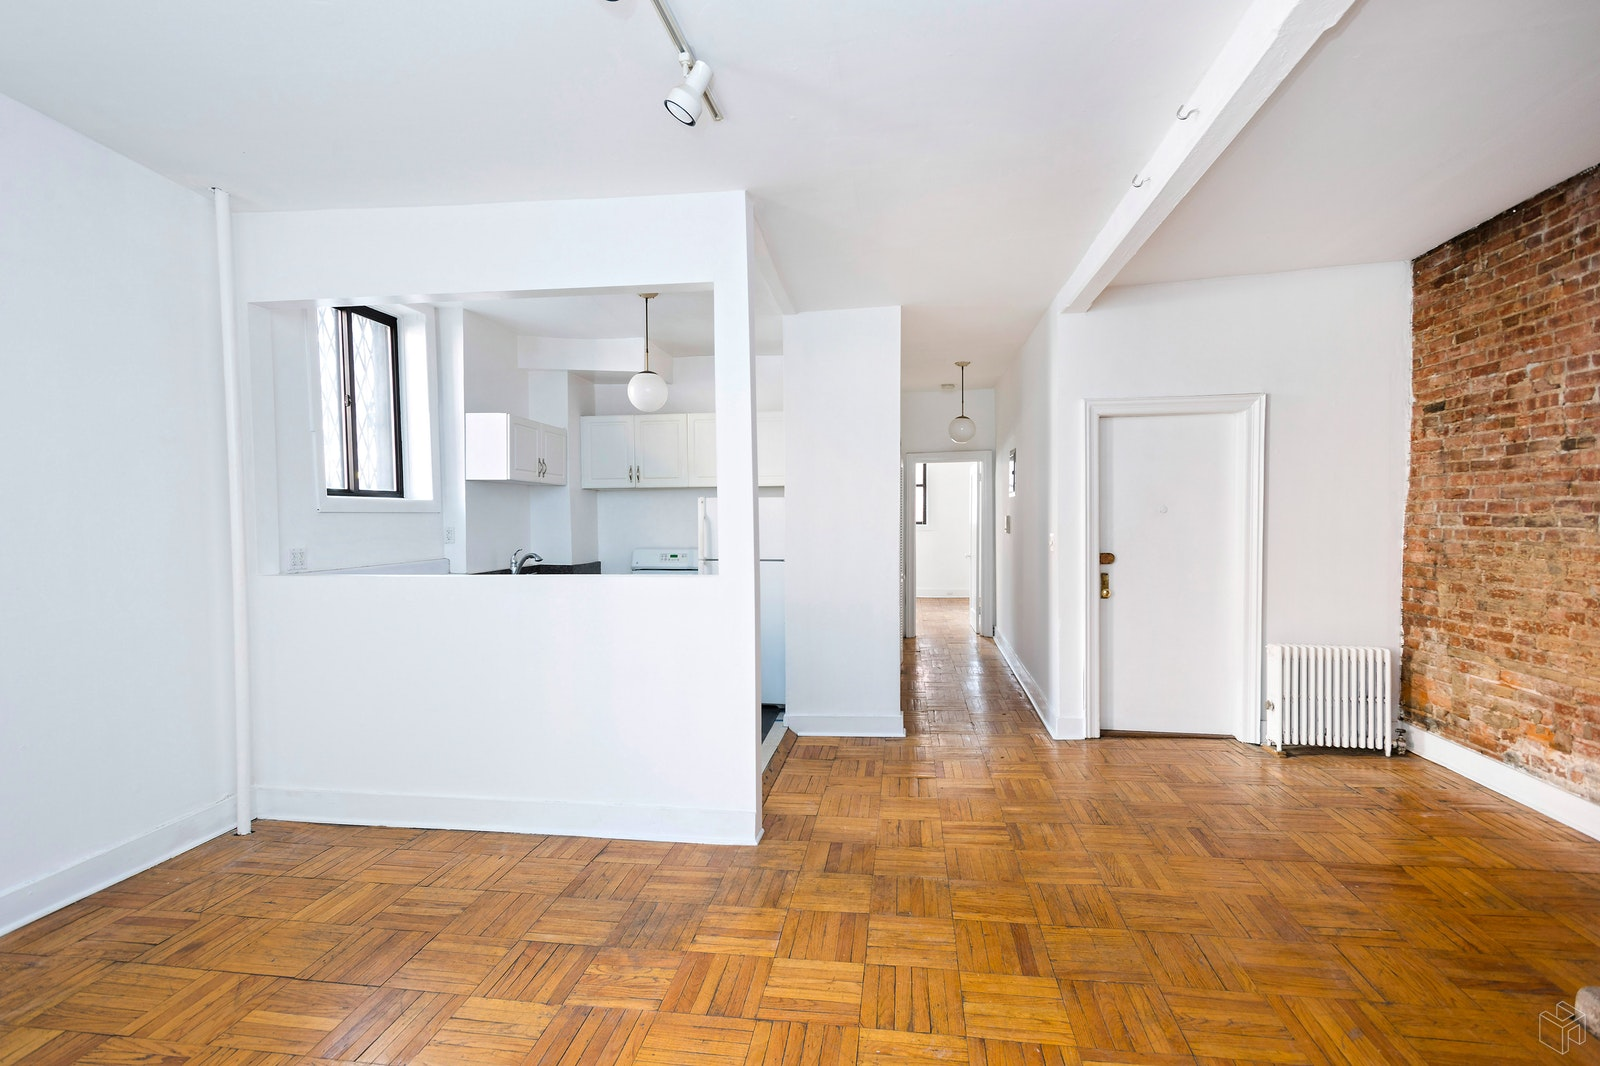 110 Hoyt Street 1, Boerum Hill, Brooklyn, NY, 11217, $875,000, Sold Property, Halstead Real Estate, Photo 2